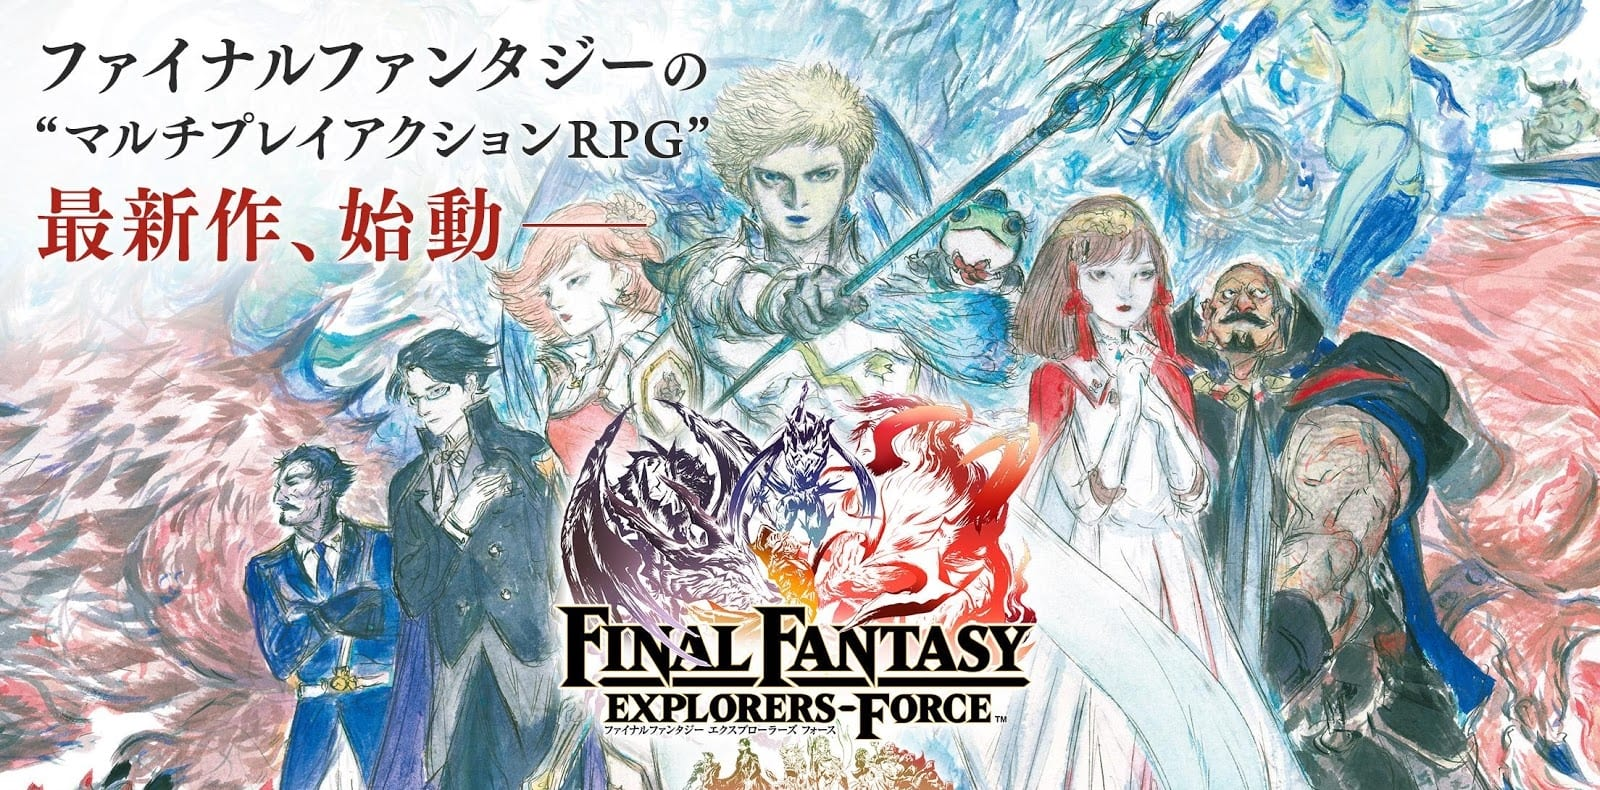 Final Fantasy Explorers Force – Yet another FF mobile game